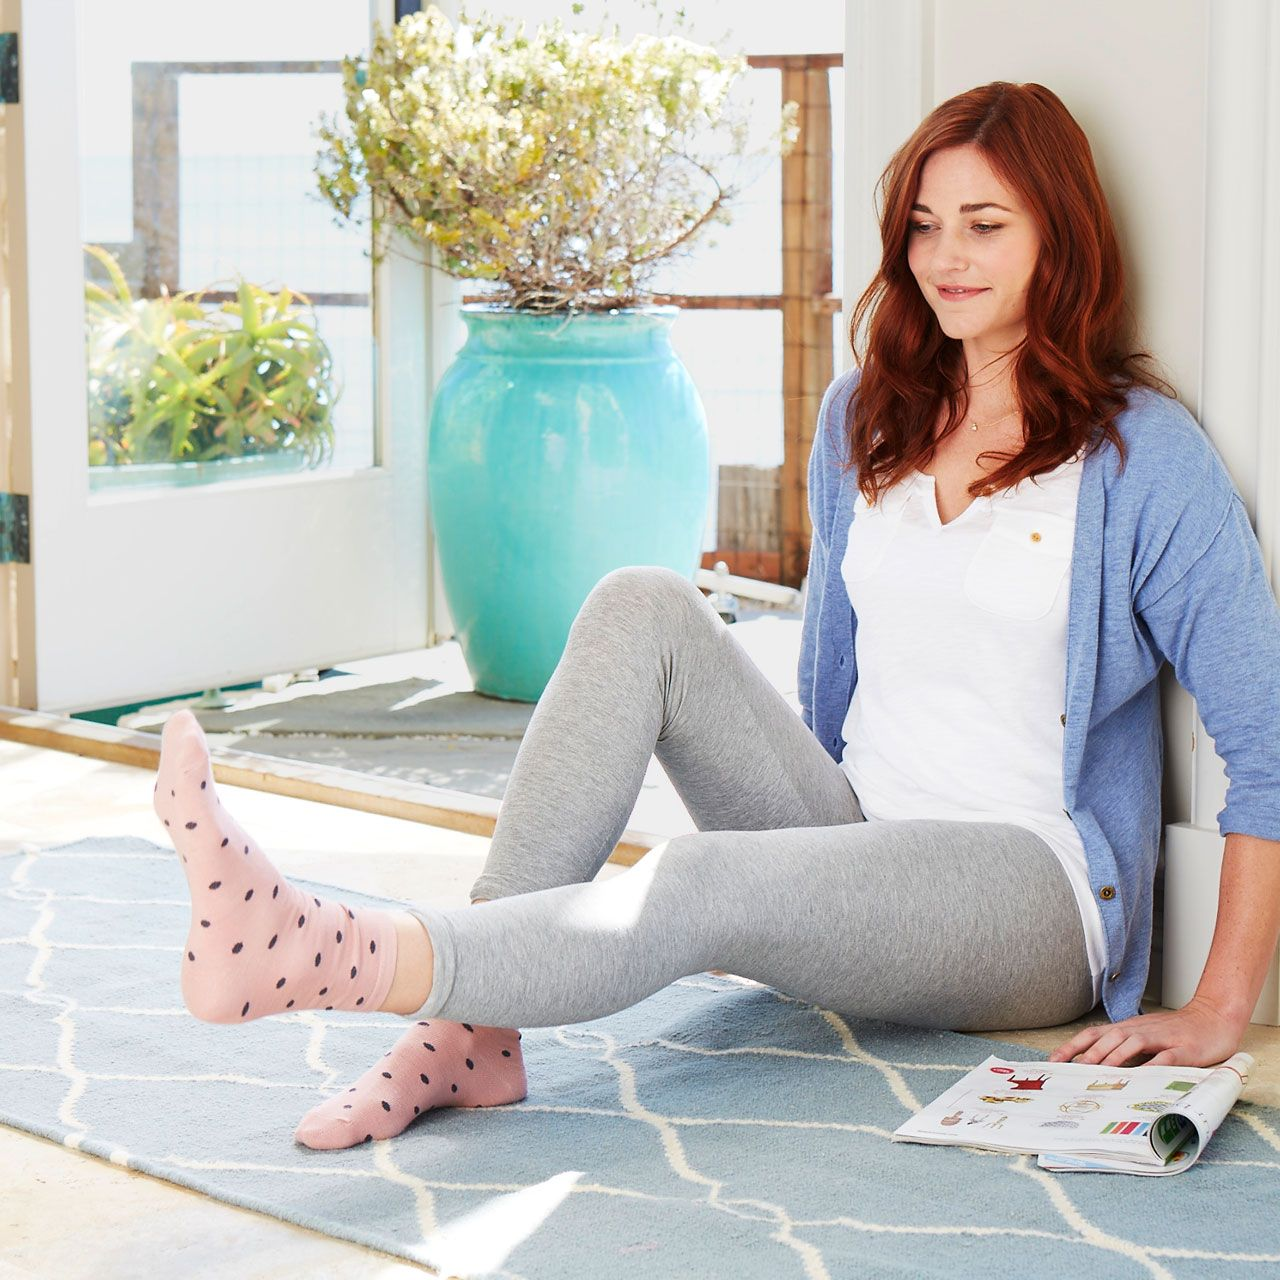 <p>Pull your belly button in to engage your abs and raise your left leg off the floor as high as you can without arching your back. Lower the leg (don't let it touch the ground), and do 15 continuous reps. Switch sides, then go on back to relaxing.</p>